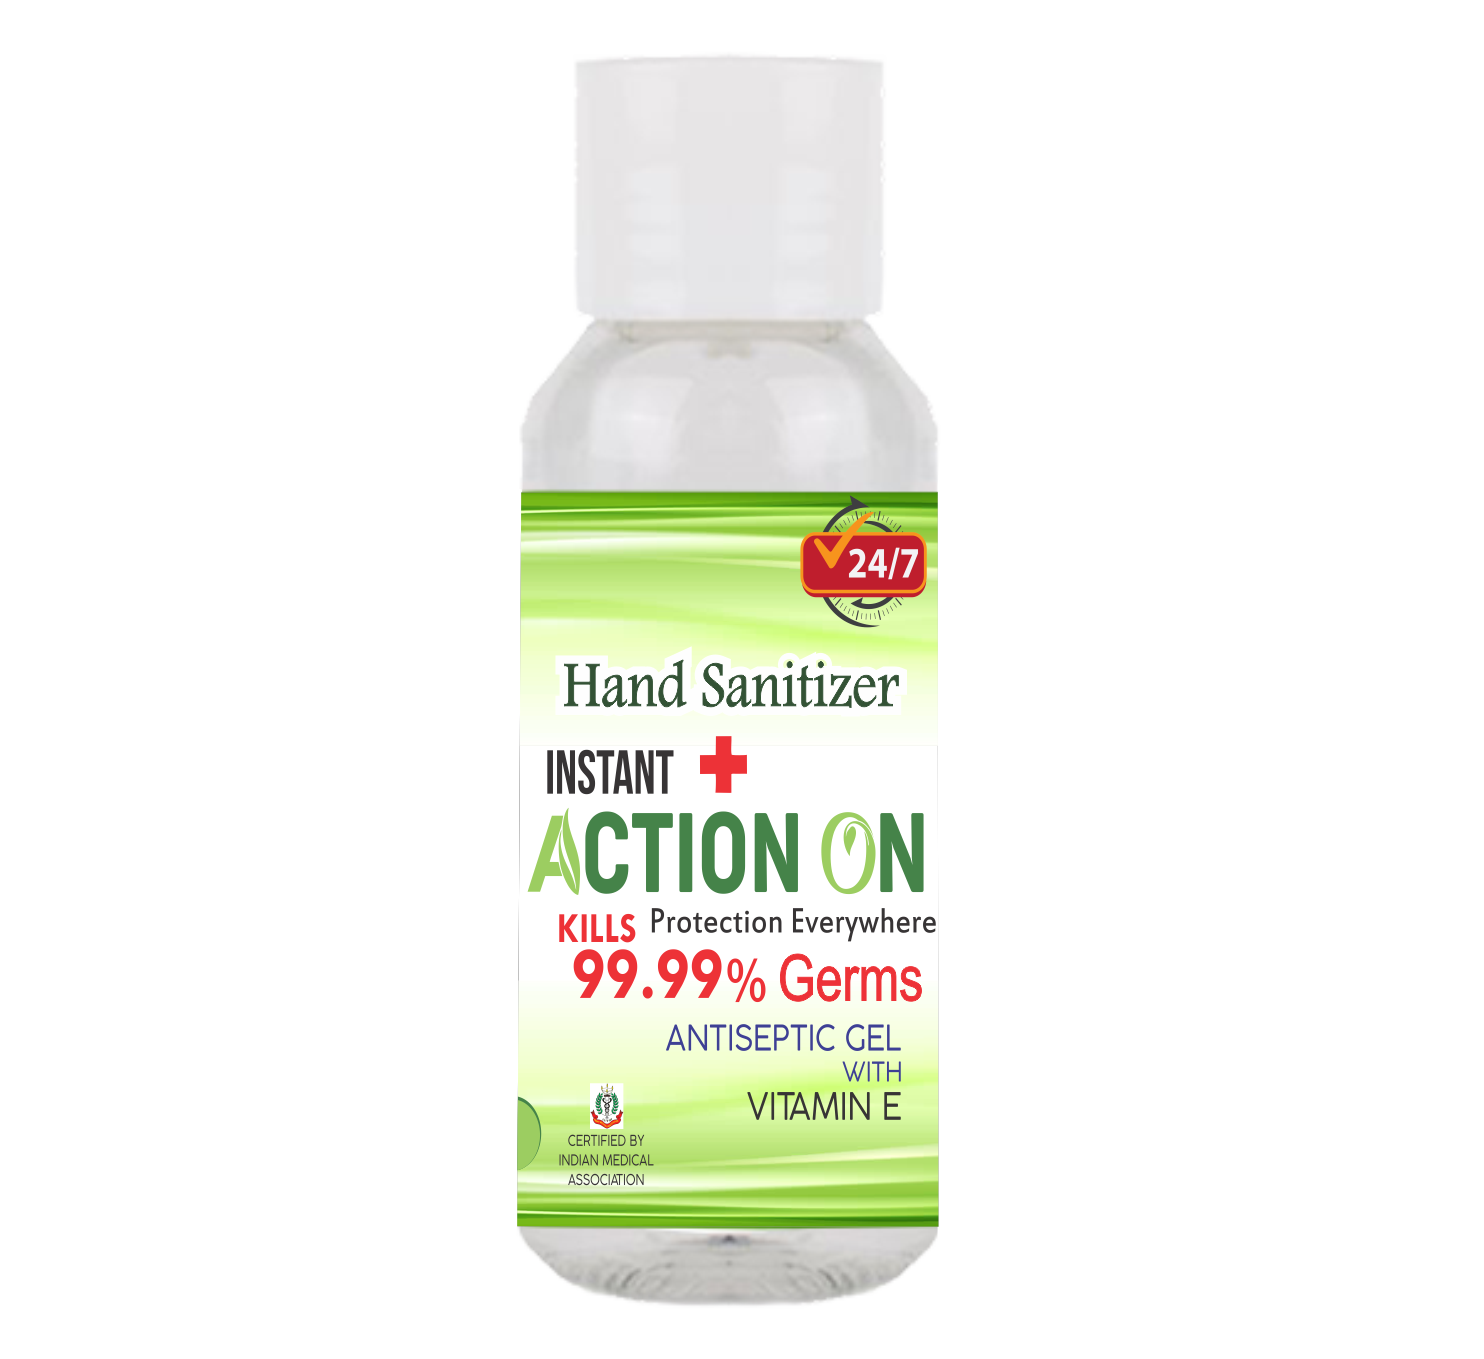 ACTION ON HAND SANITIZER